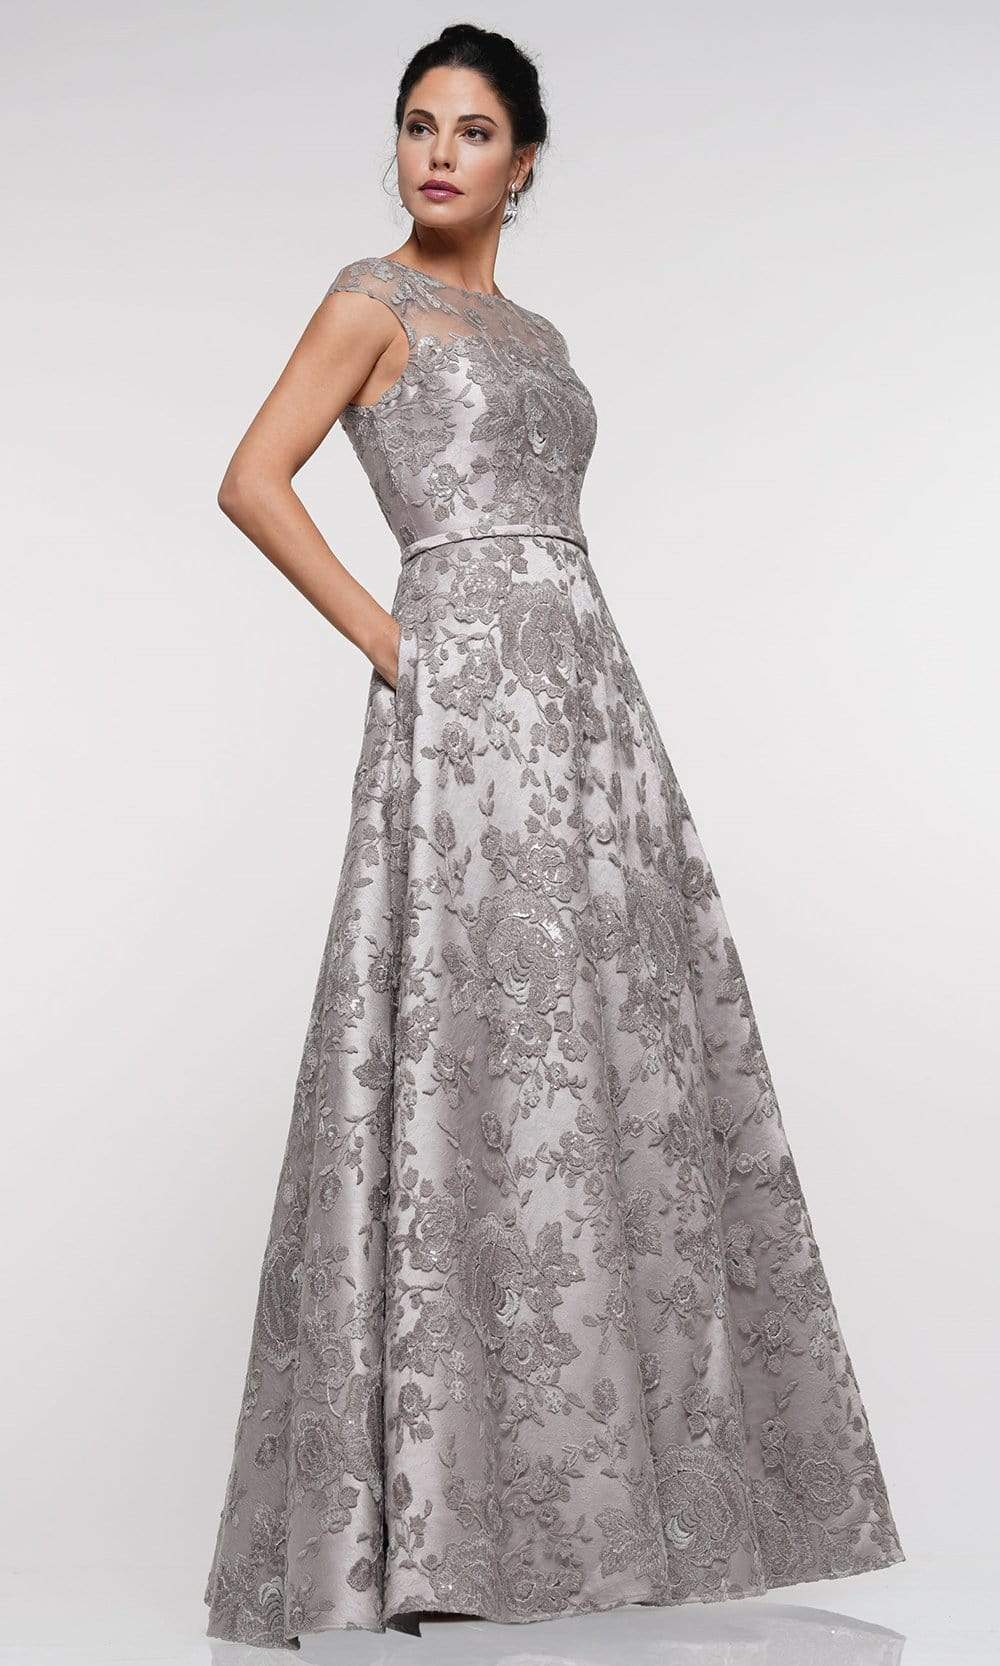 Marsoni By Colors - MV1012 Sequined Rosette Embroidered Long Gown Mother of the Bride Dresses 4 / Taupe